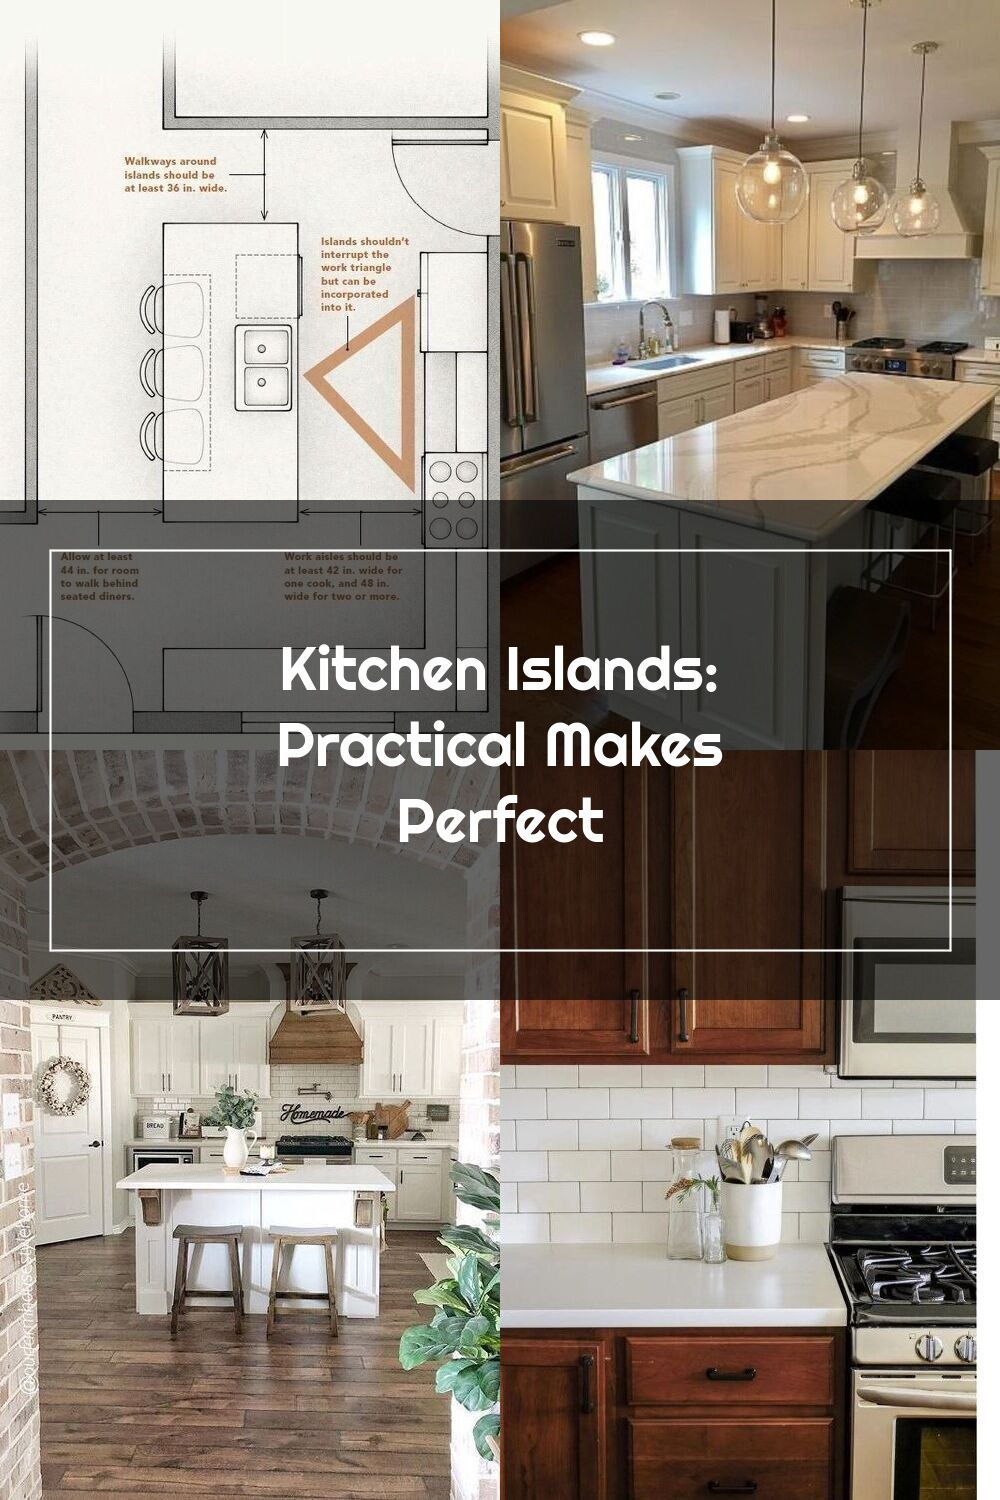 Kitchen Islands Practical Makes Perfect Kitchenlayouts In 2020 Kitchen Layout Kitchen Remodel Kitchen